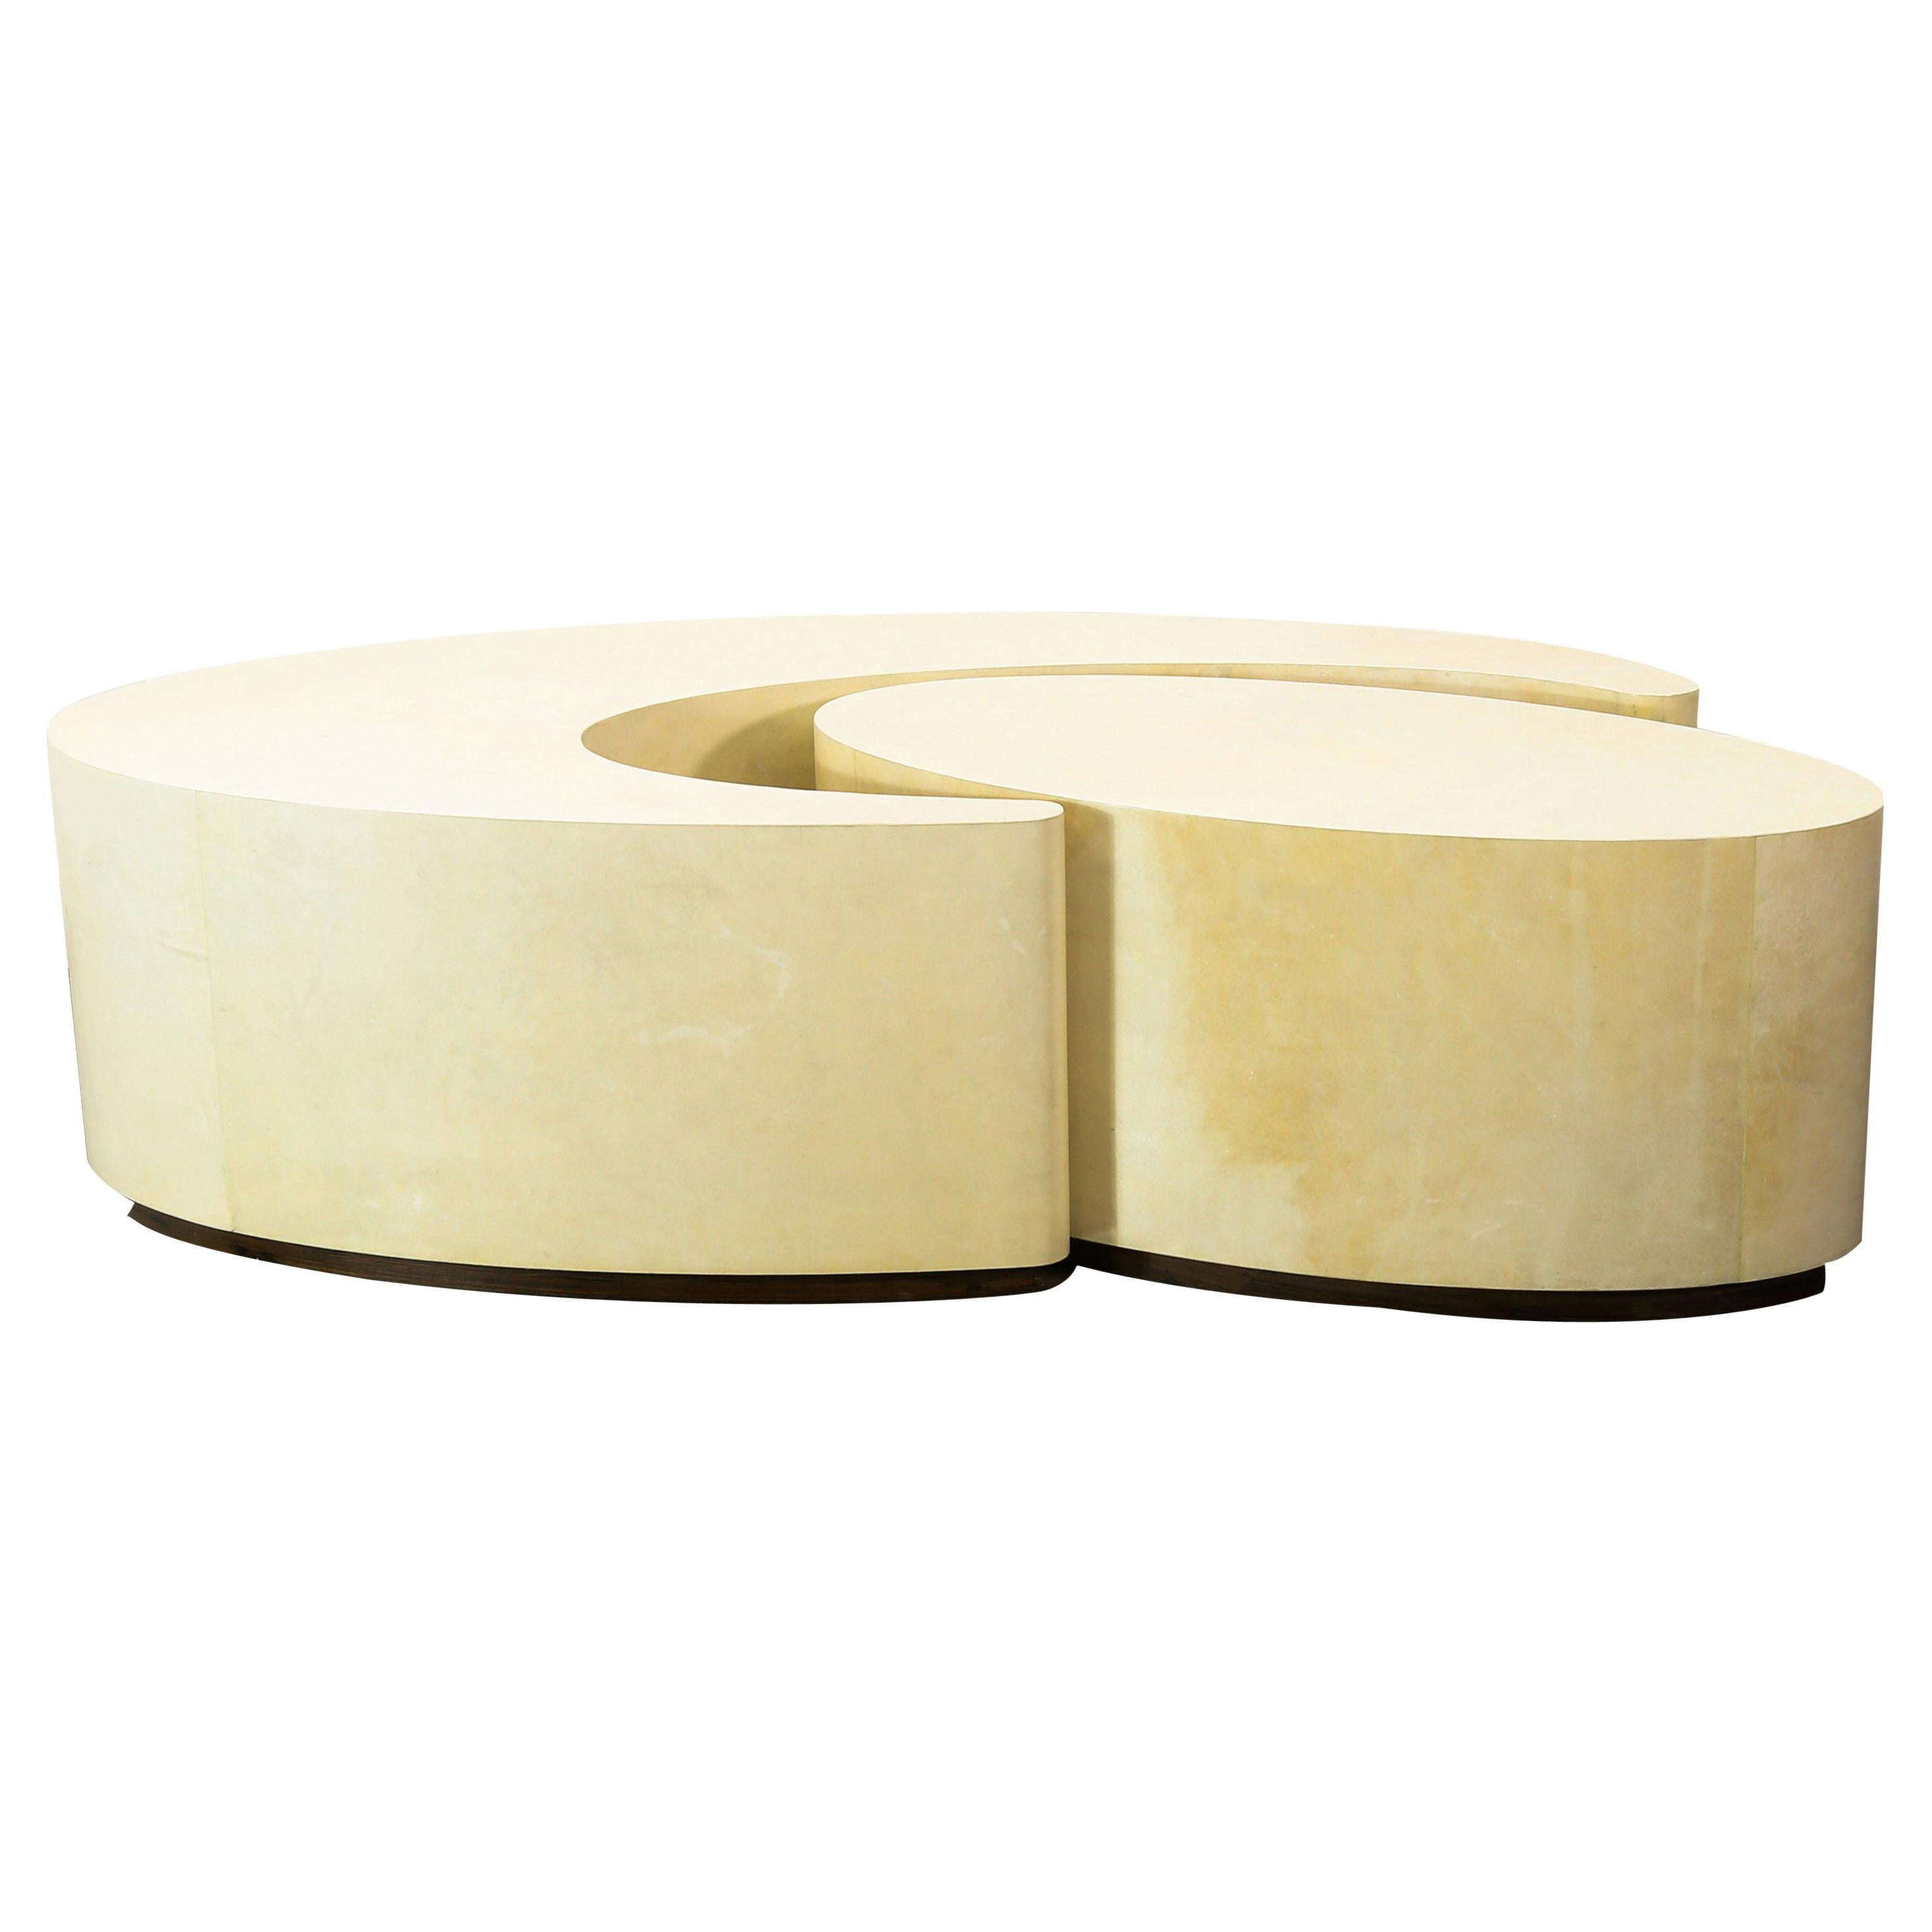 Goatskin Modern Sculptural Nesting Cocktail Tables from Costantini, Cadenza